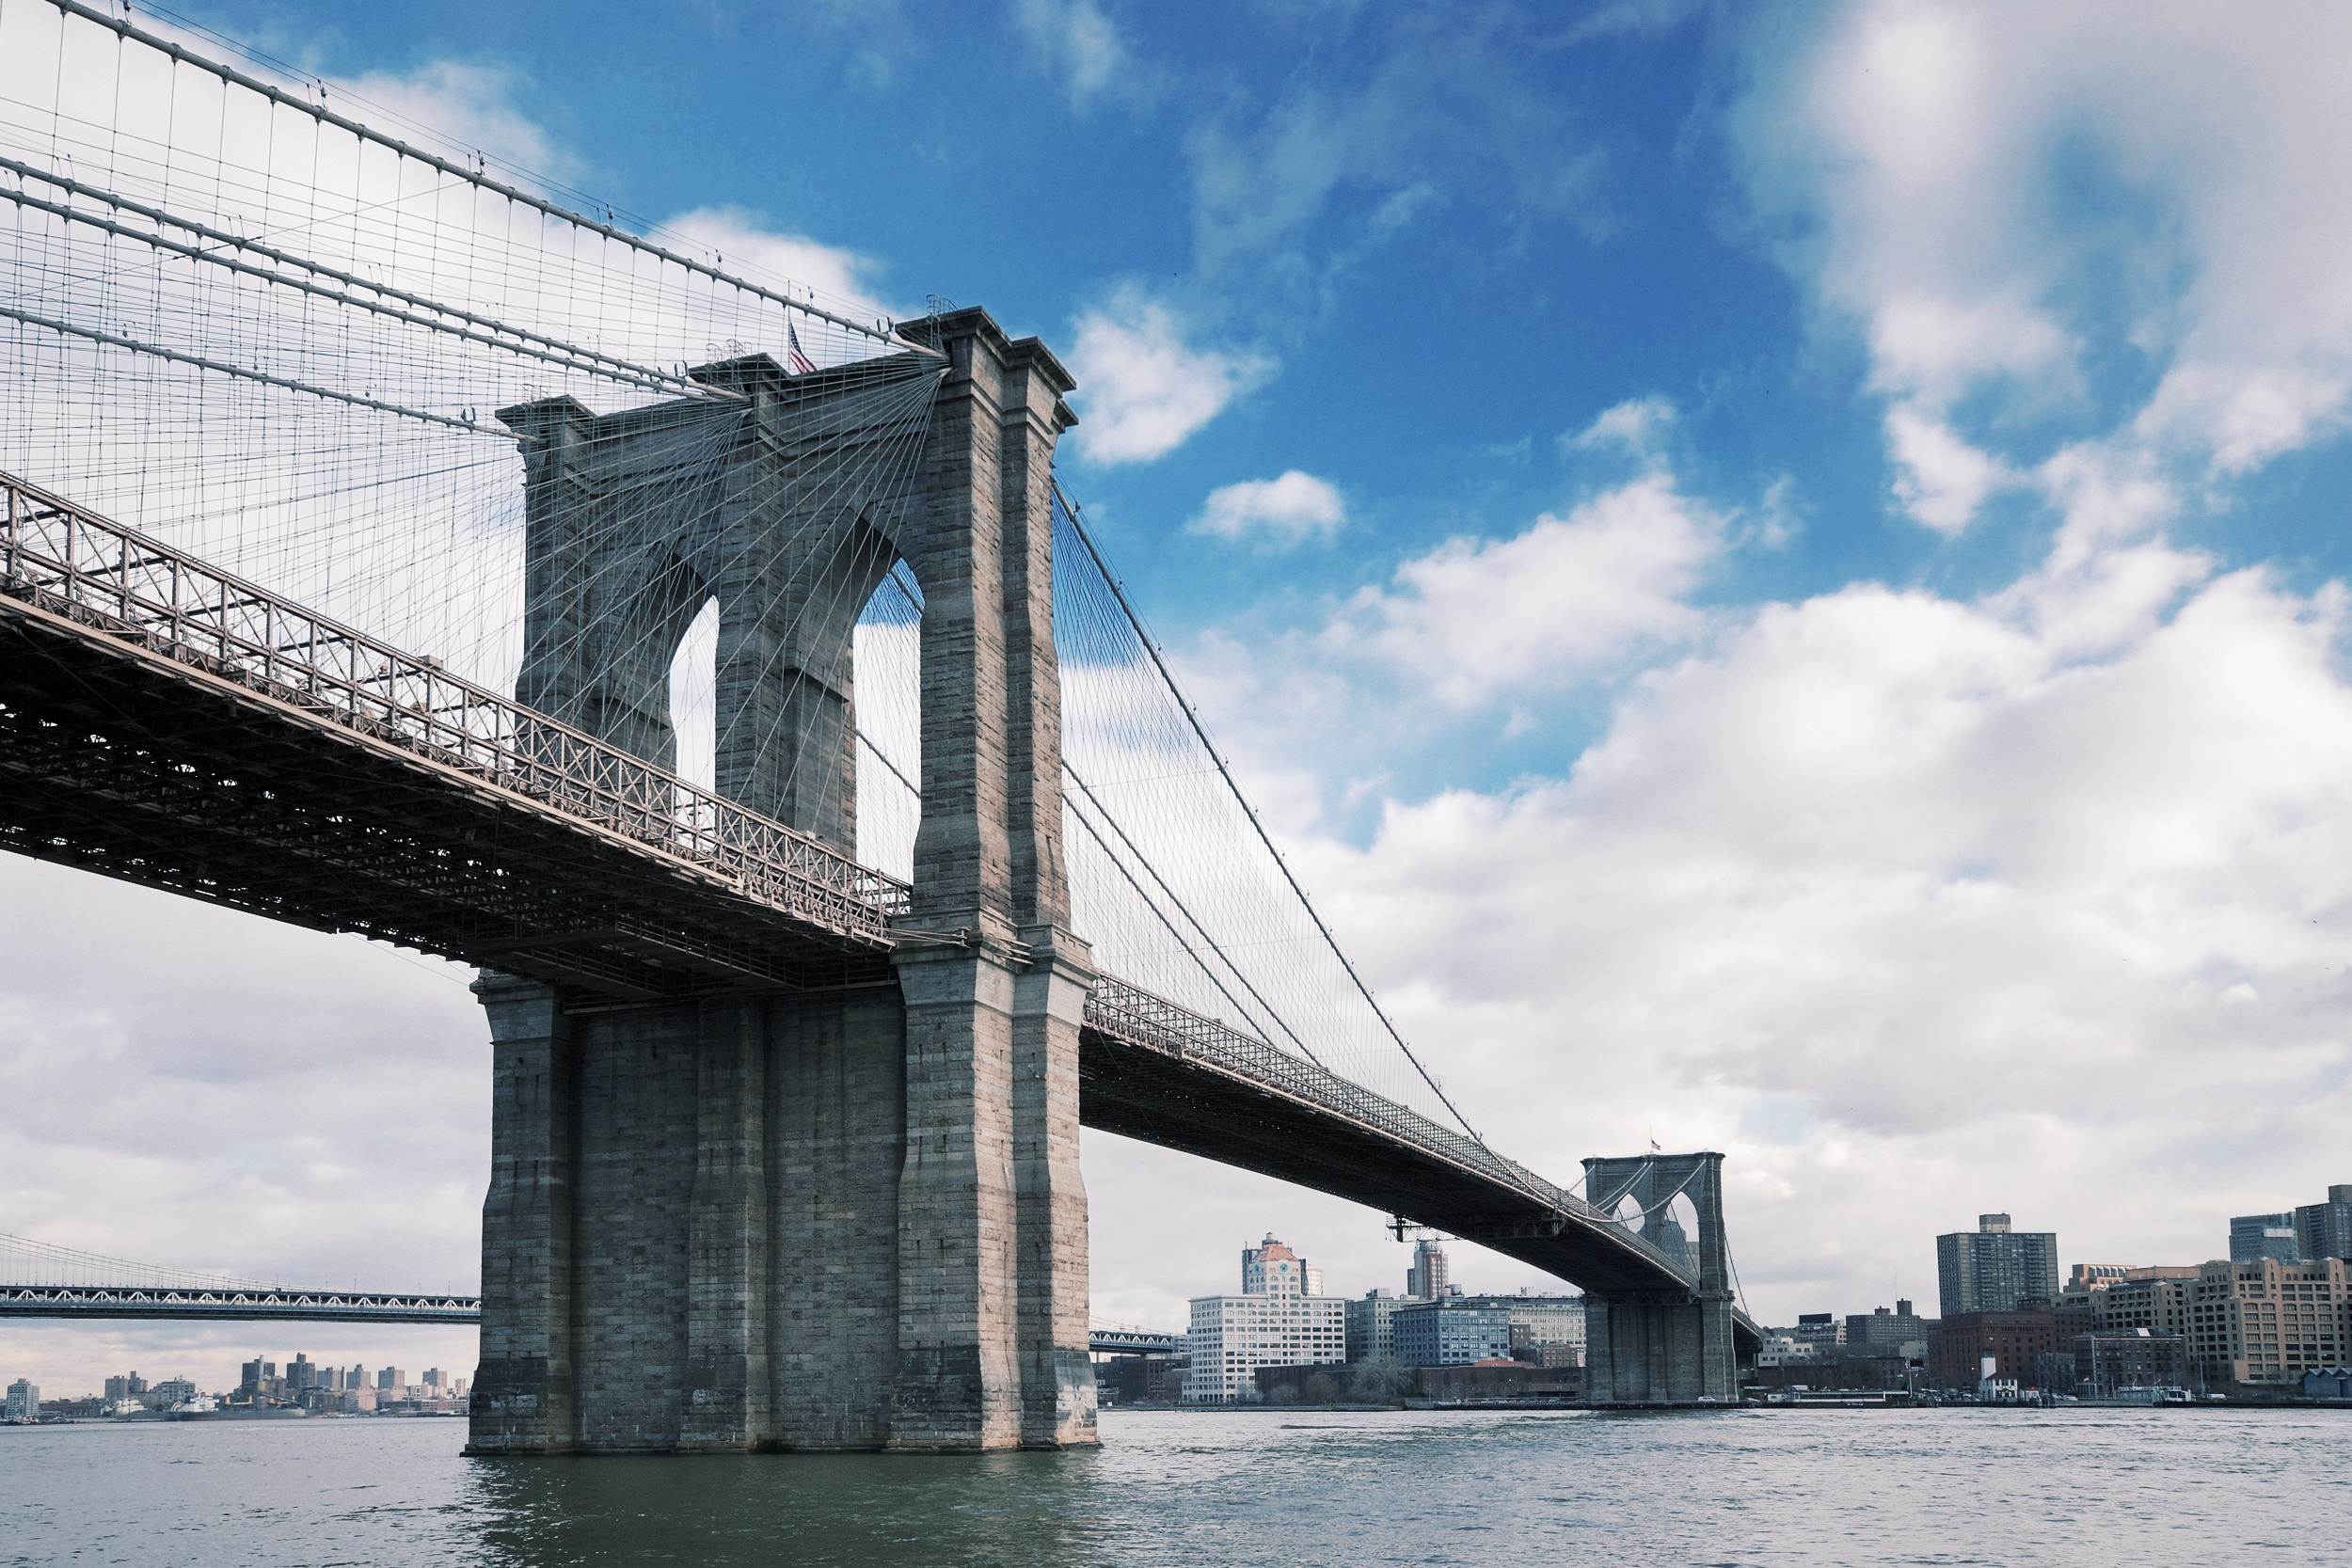 Its symbol, the quintessence itself of Brooklyn's city, The Brooklyn Bridge